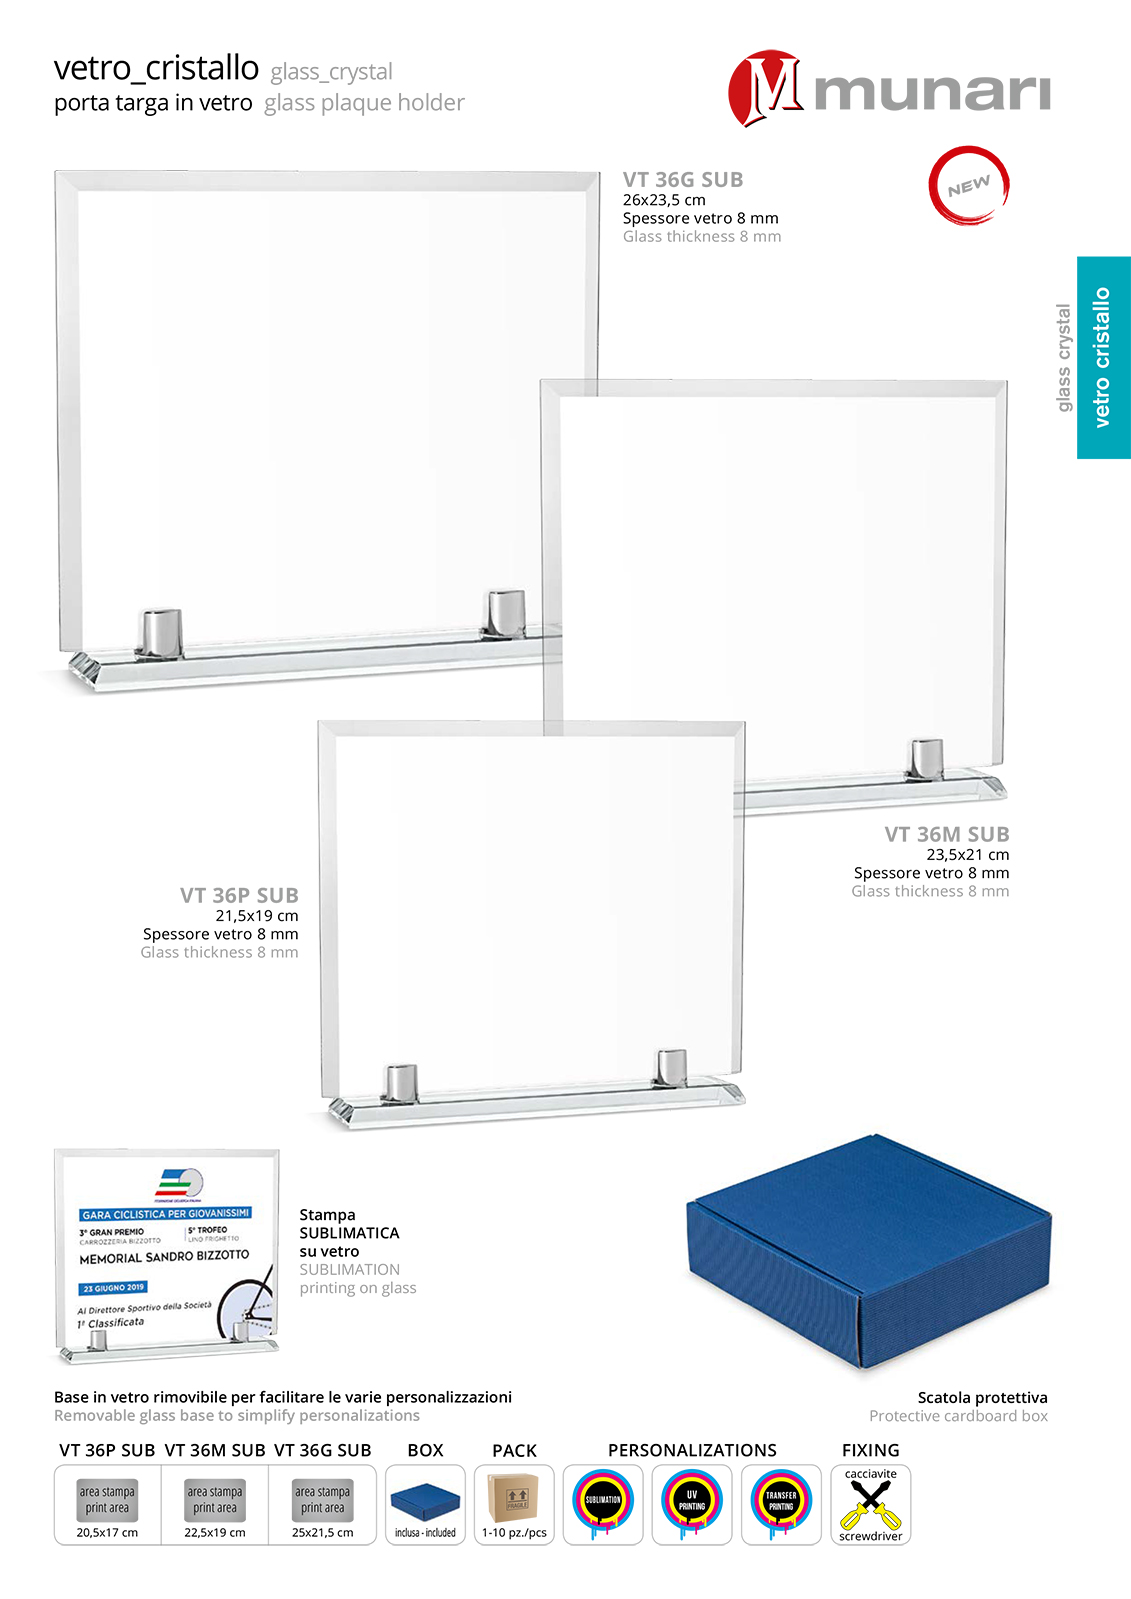 Sublimation glass plaque holder with glass base series VT 36 SUB